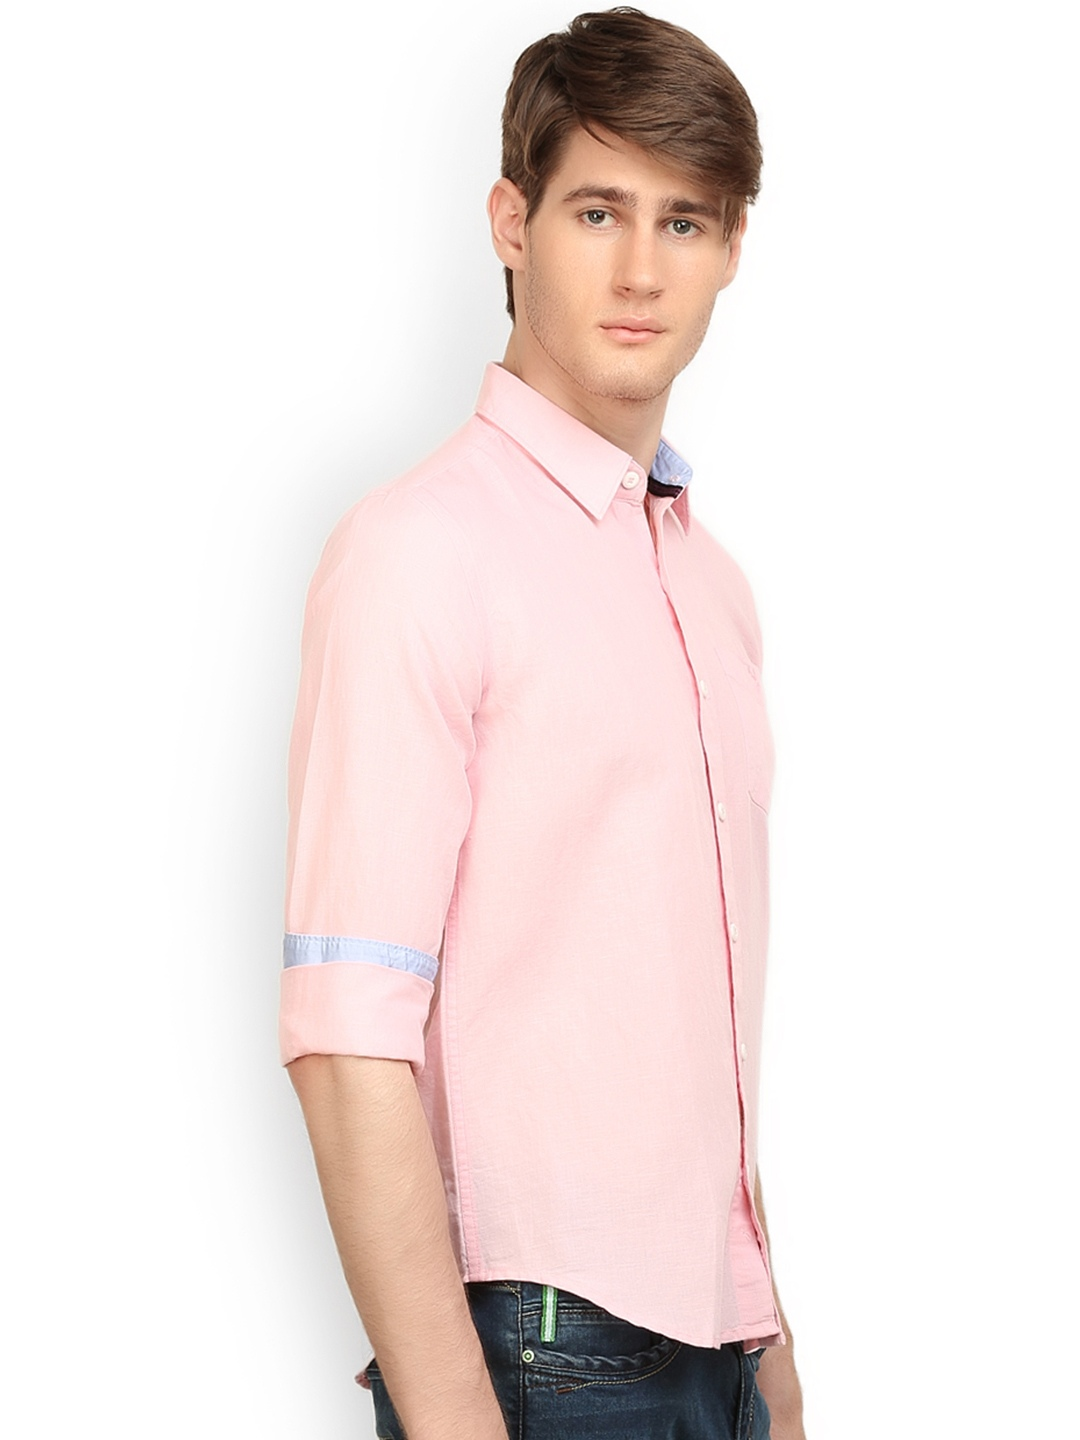 Pink Dress Shirts for Men at Macy's come in a variety of styles and sizes. Shop top brands for Men's Dress Shirts and find the perfect fit today. Macy's Presents: AlfaTech by Alfani Men's Slim Fit Bedford Cord Dress Shirt, Created For Macy's.